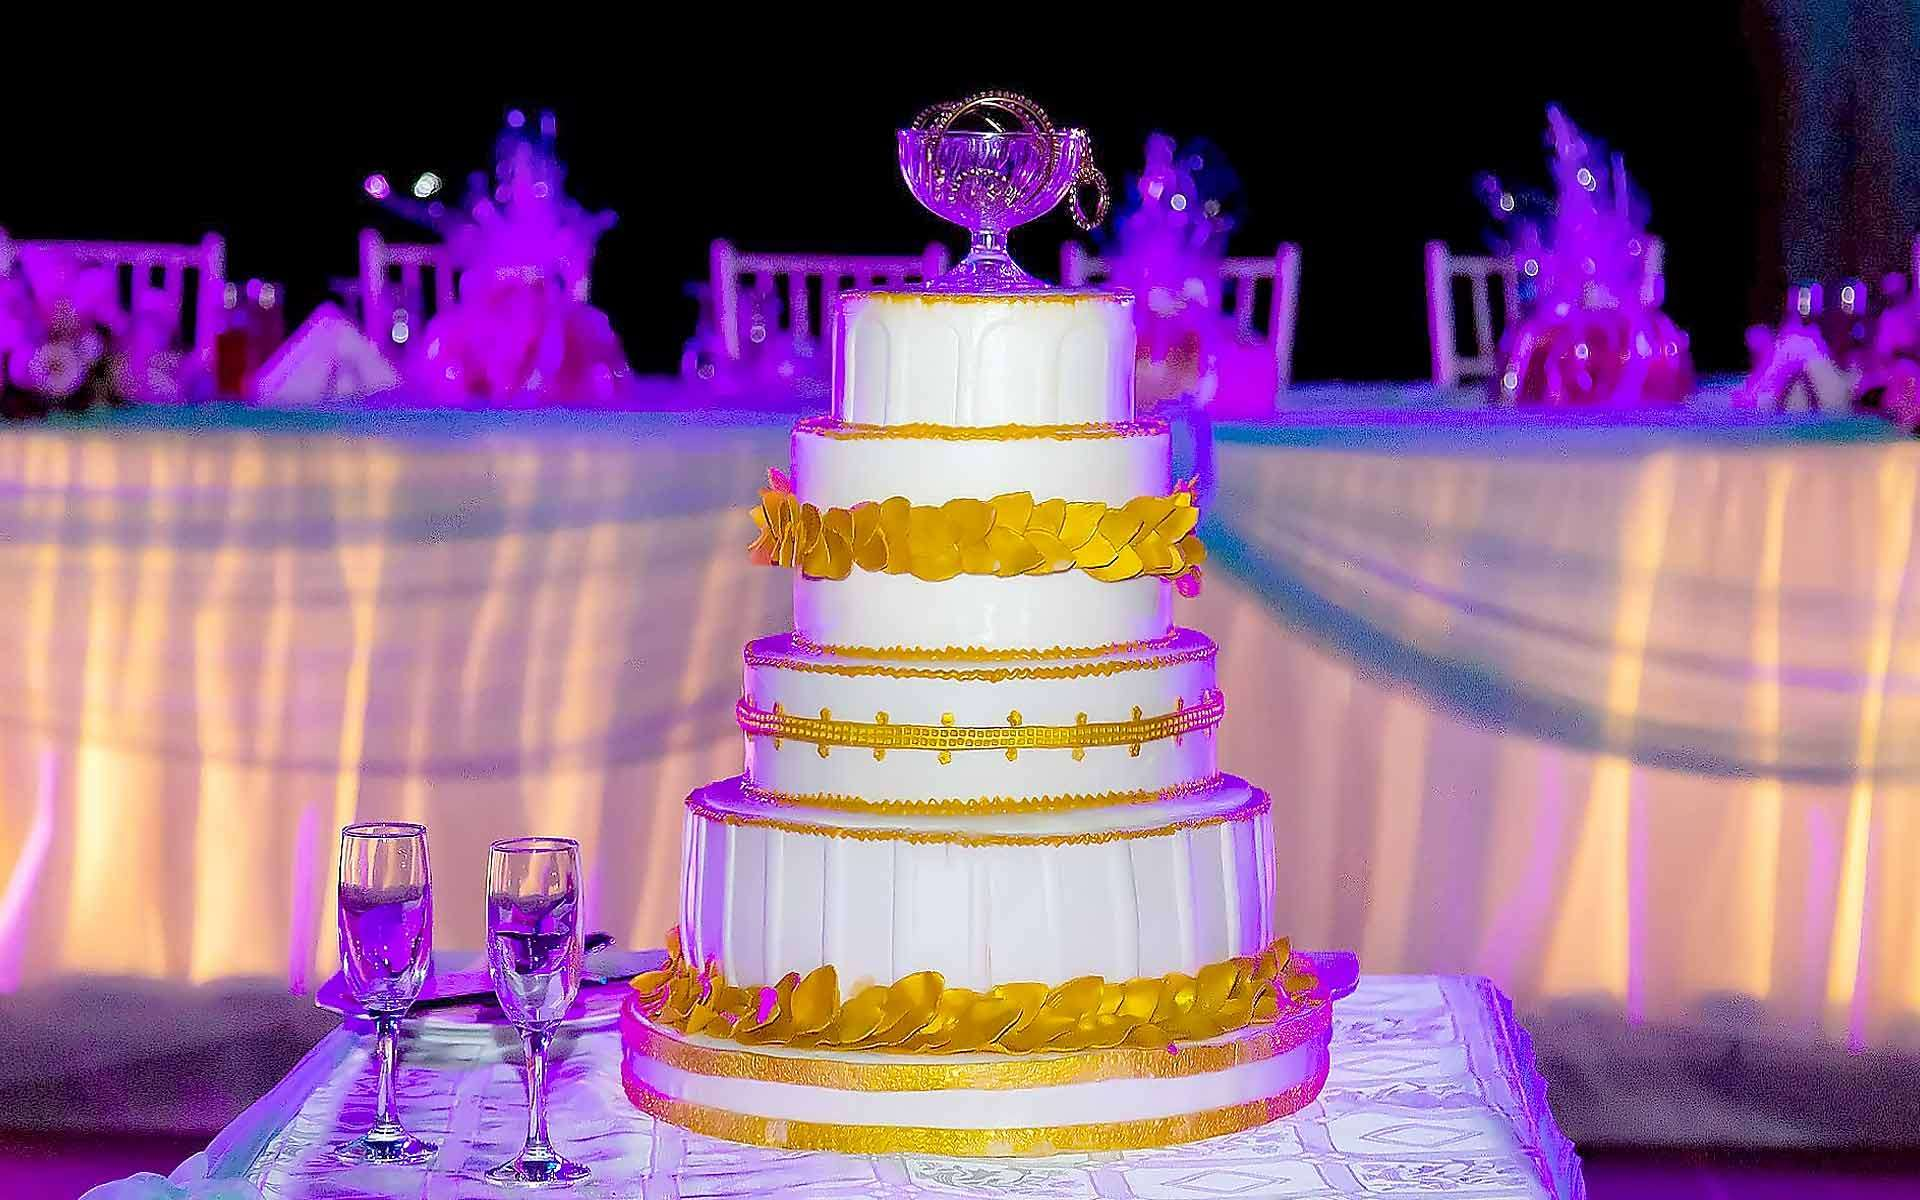 Golden-Leaf-Wedding-Cake-by-Diamond-Events-Wedding-Event-planning-services